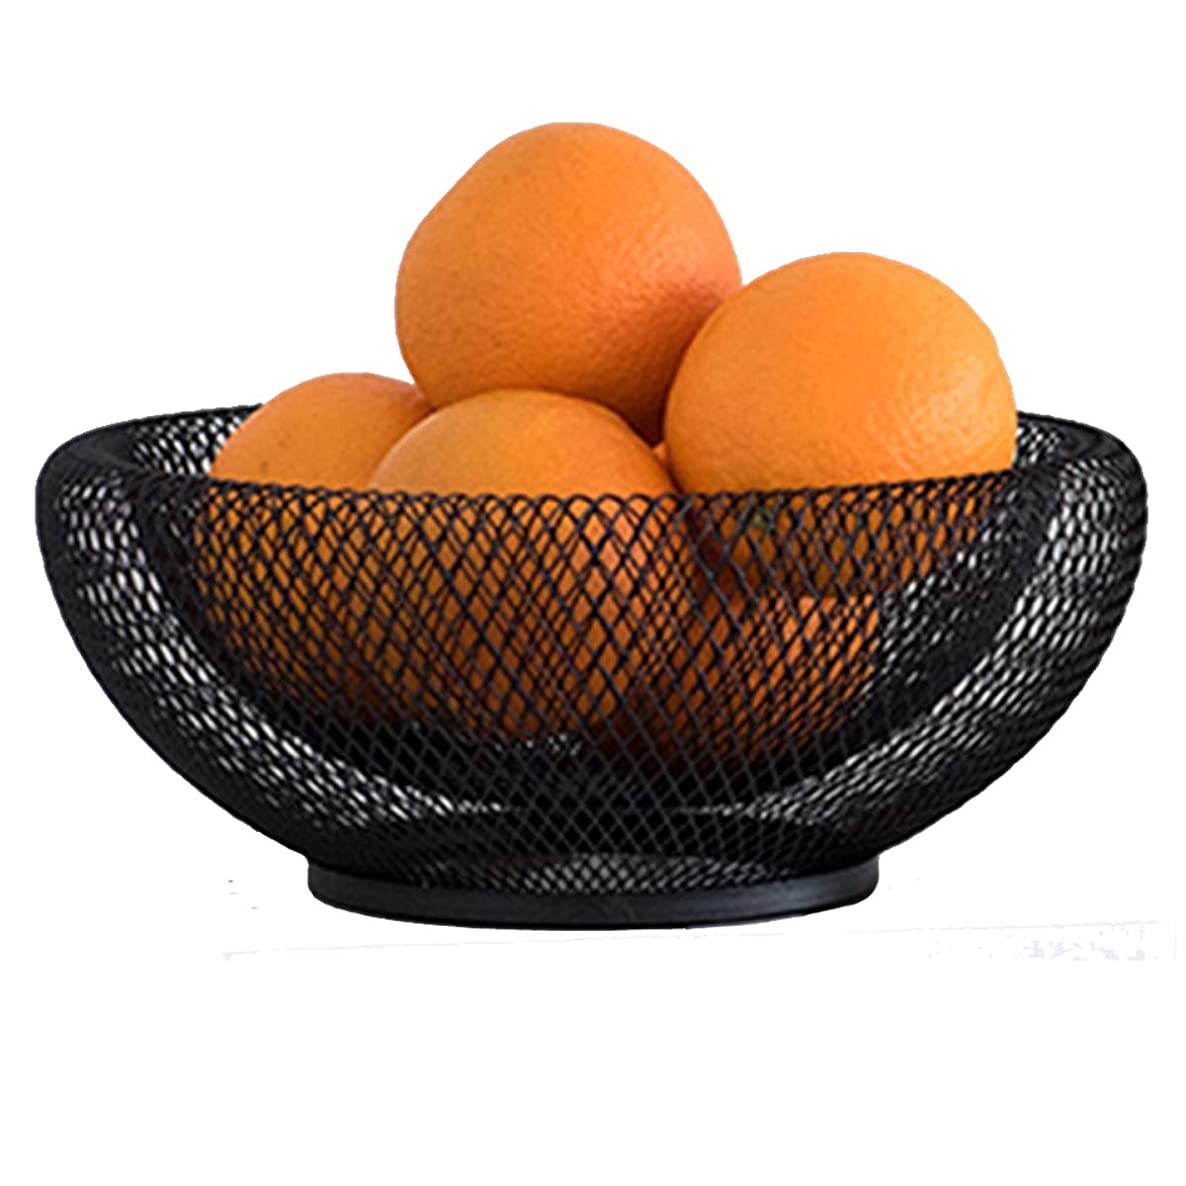 GOLDCHEE Black Metal Double Wall Mesh Fruit Bowl Creative Countertop Storage Basket Decorative Table Centerpiece Holder Stand for Fruit Vegetable Bread, Candy and Other Household Items (A) xqou2533190075